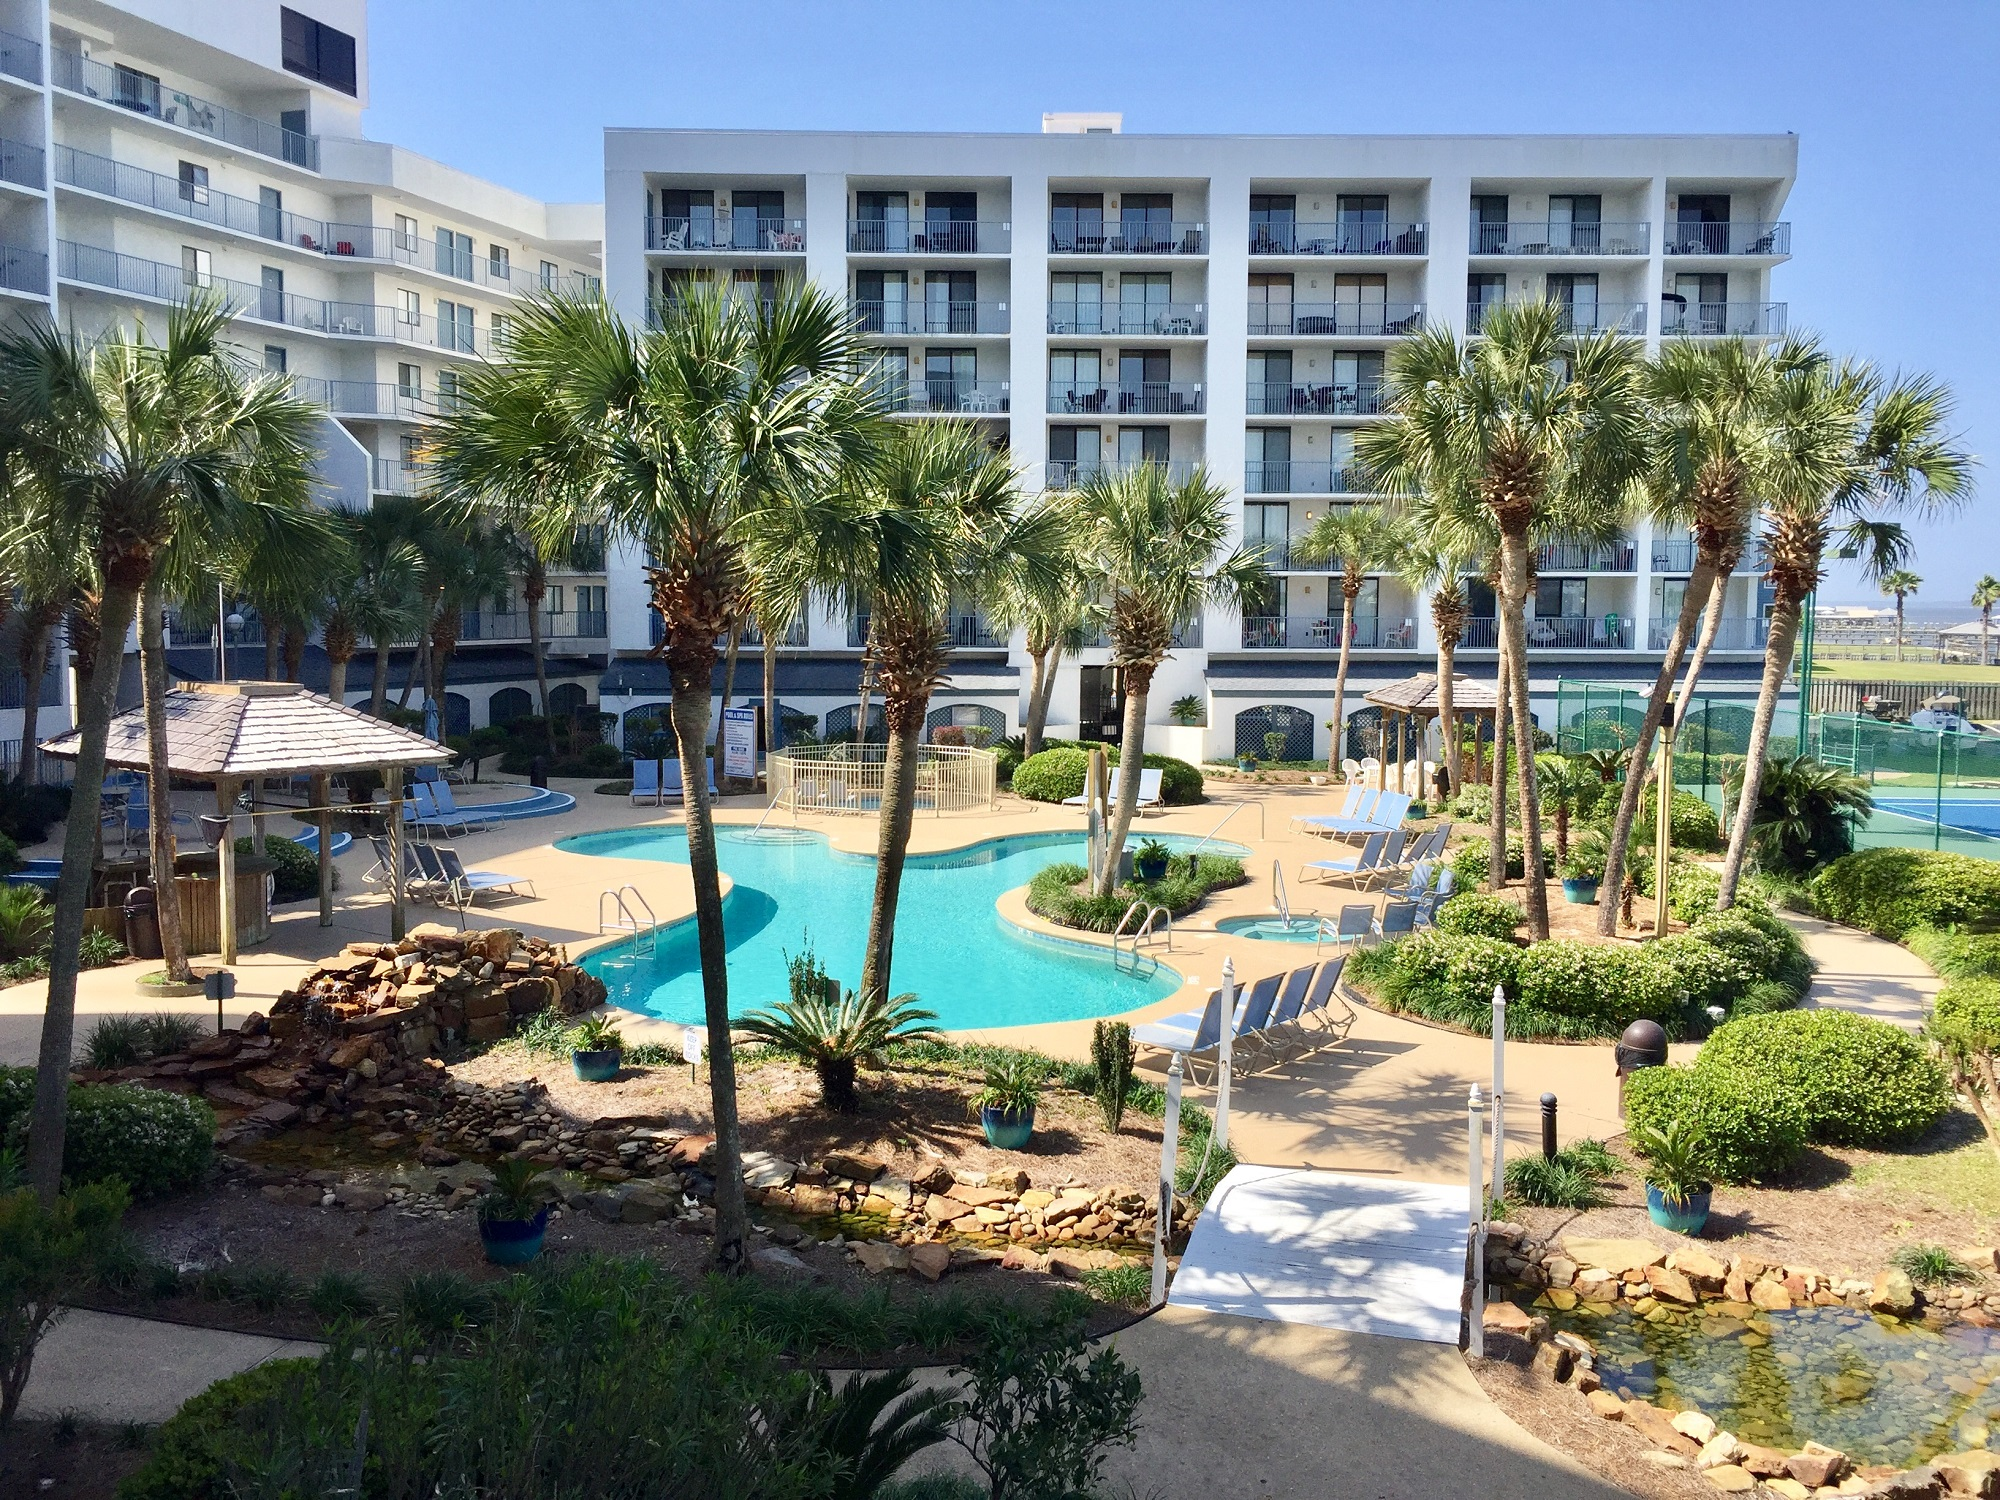 GS Surf & Racquet 301A Condo rental in Gulf Shores Surf and Racquet Club in Gulf Shores Alabama - #40